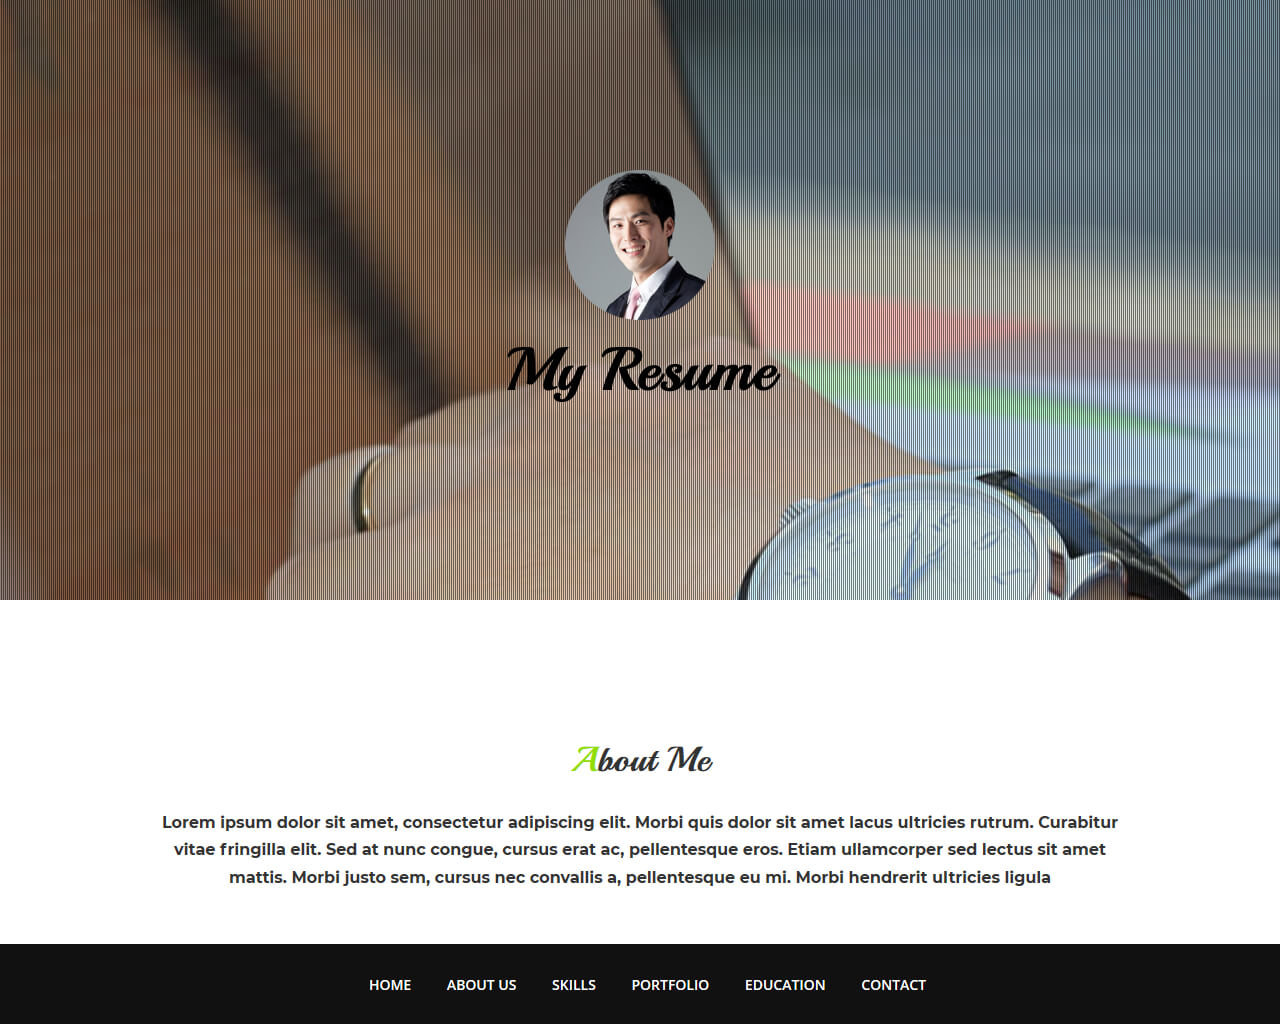 Free HTML bootstrap template - My Resume